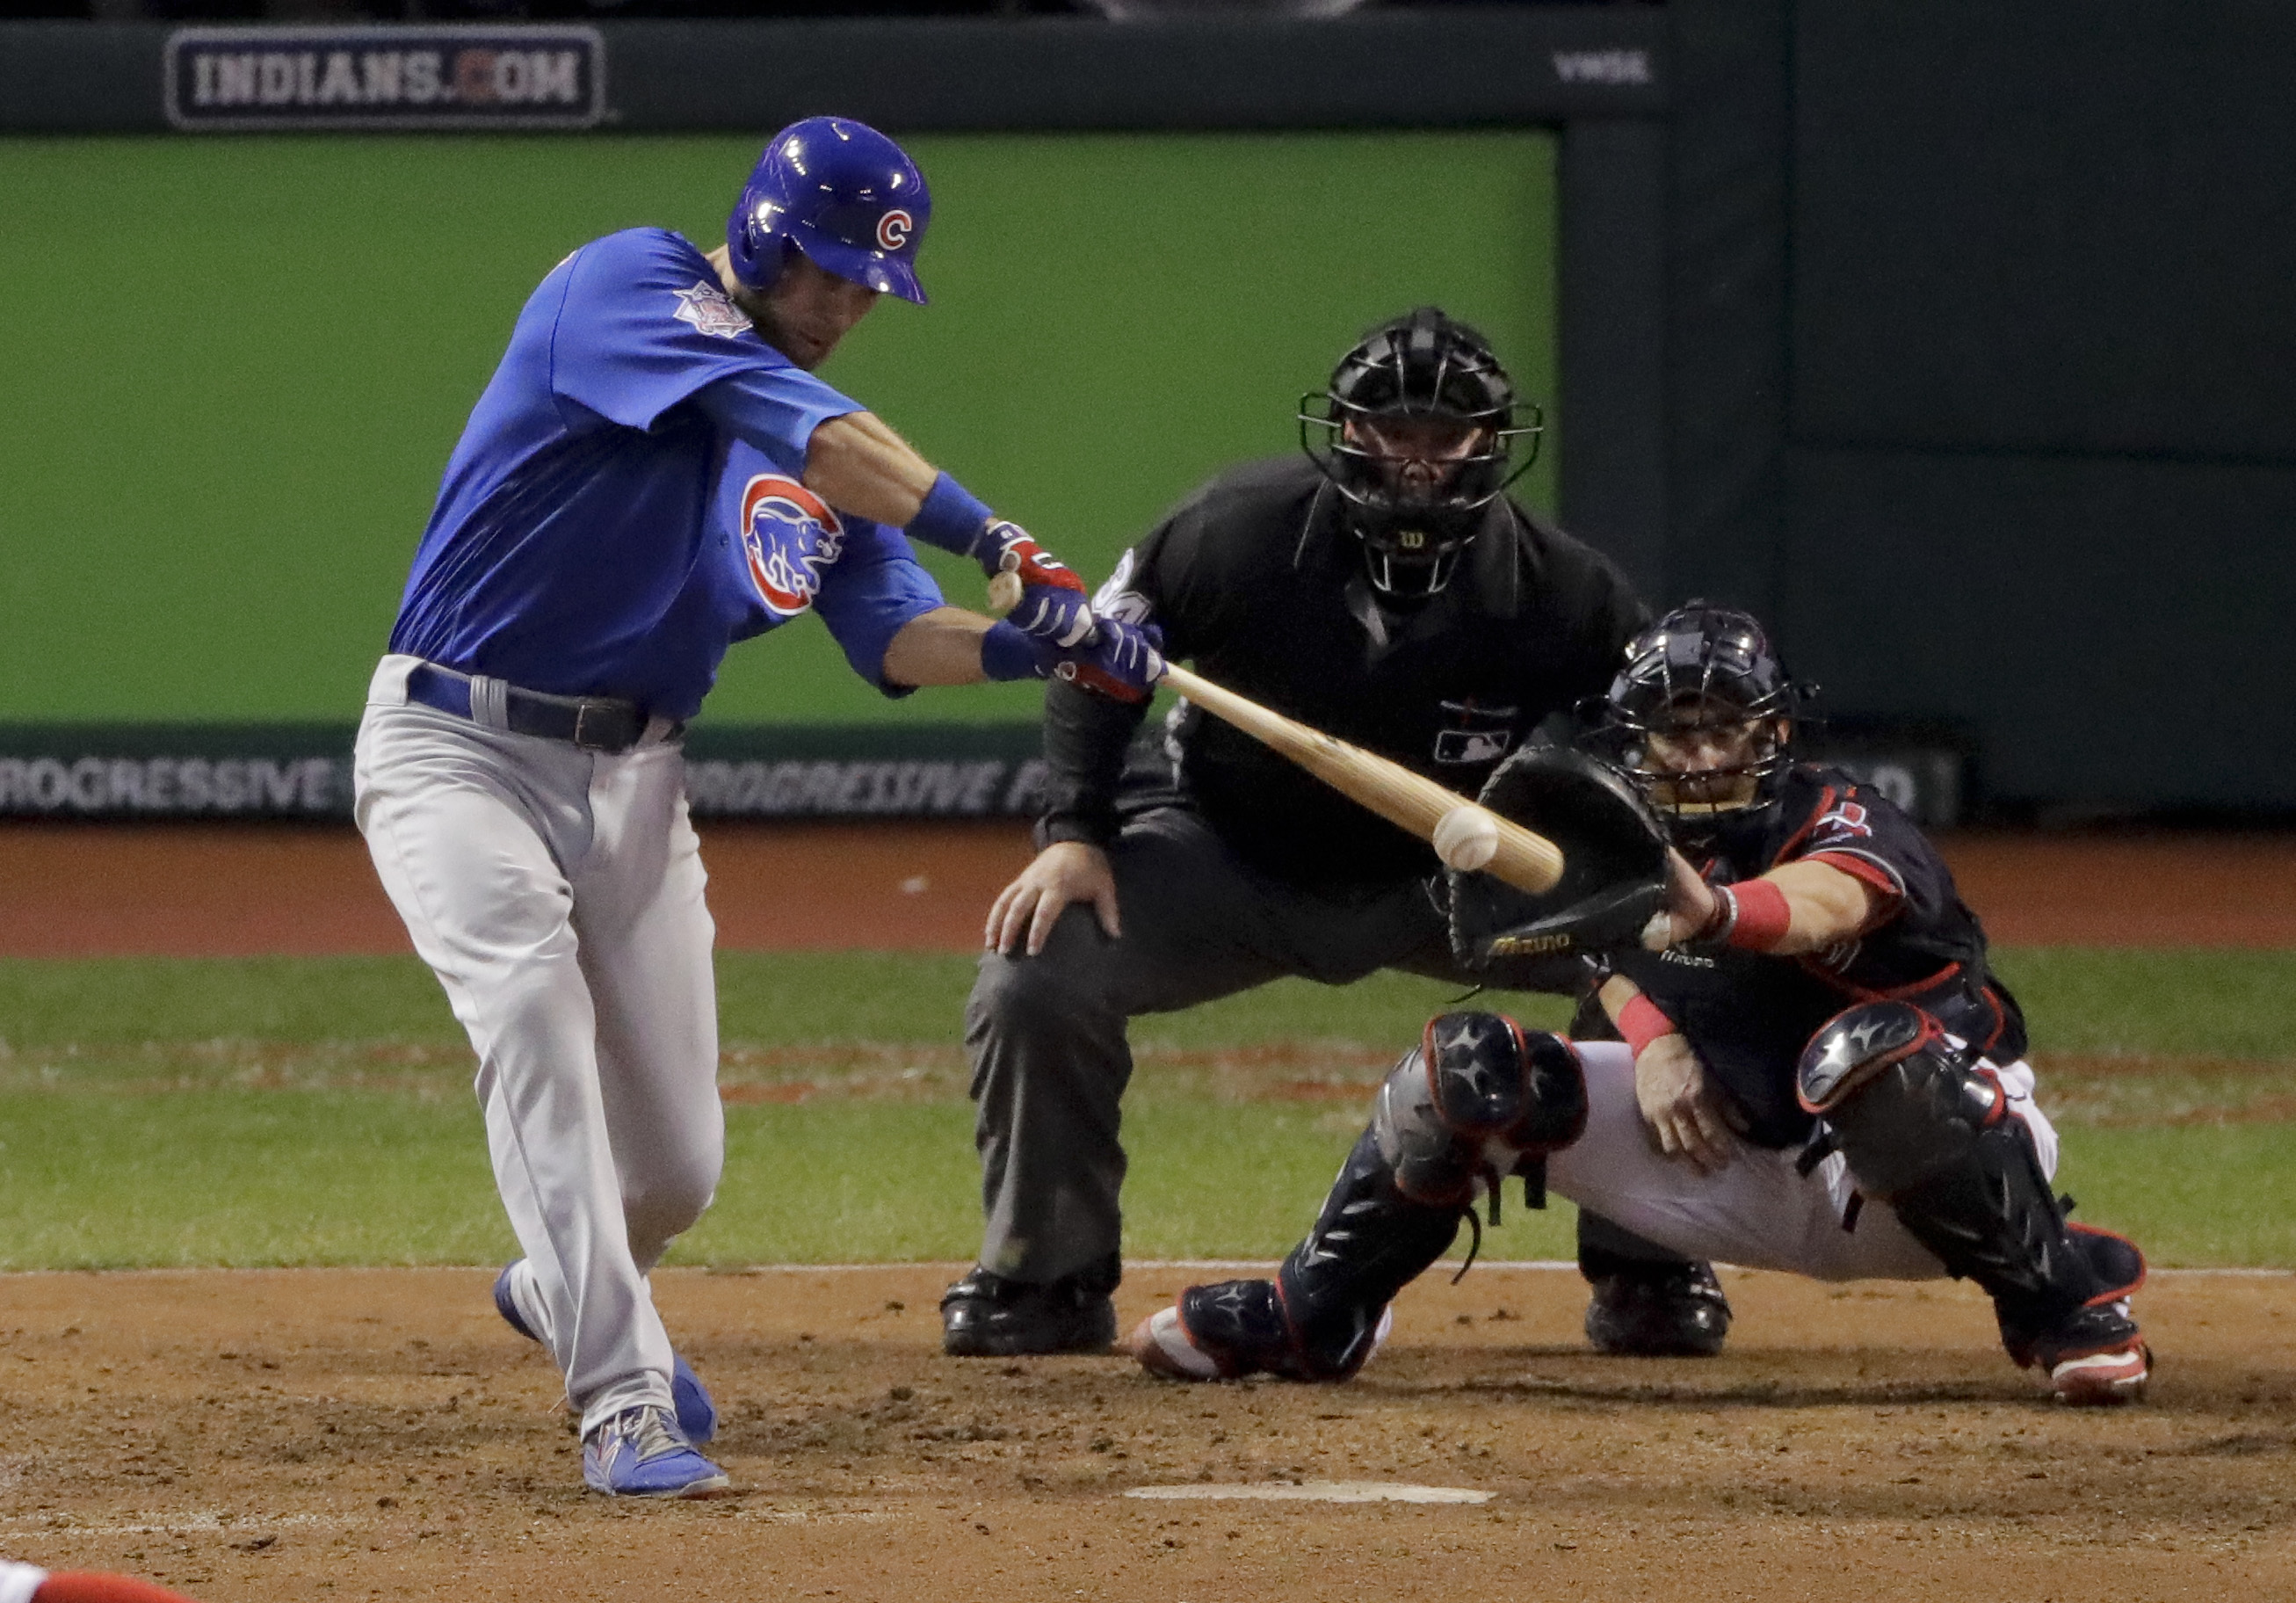 Chicago Cubs' Ben Zobrist watches his RBI-double against the Cleveland Indians during the 10th inning of Game 7 of the Major League Baseball World Series Thursday, Nov. 3, 2016, in Cleveland. (AP Photo/Charlie Riedel)